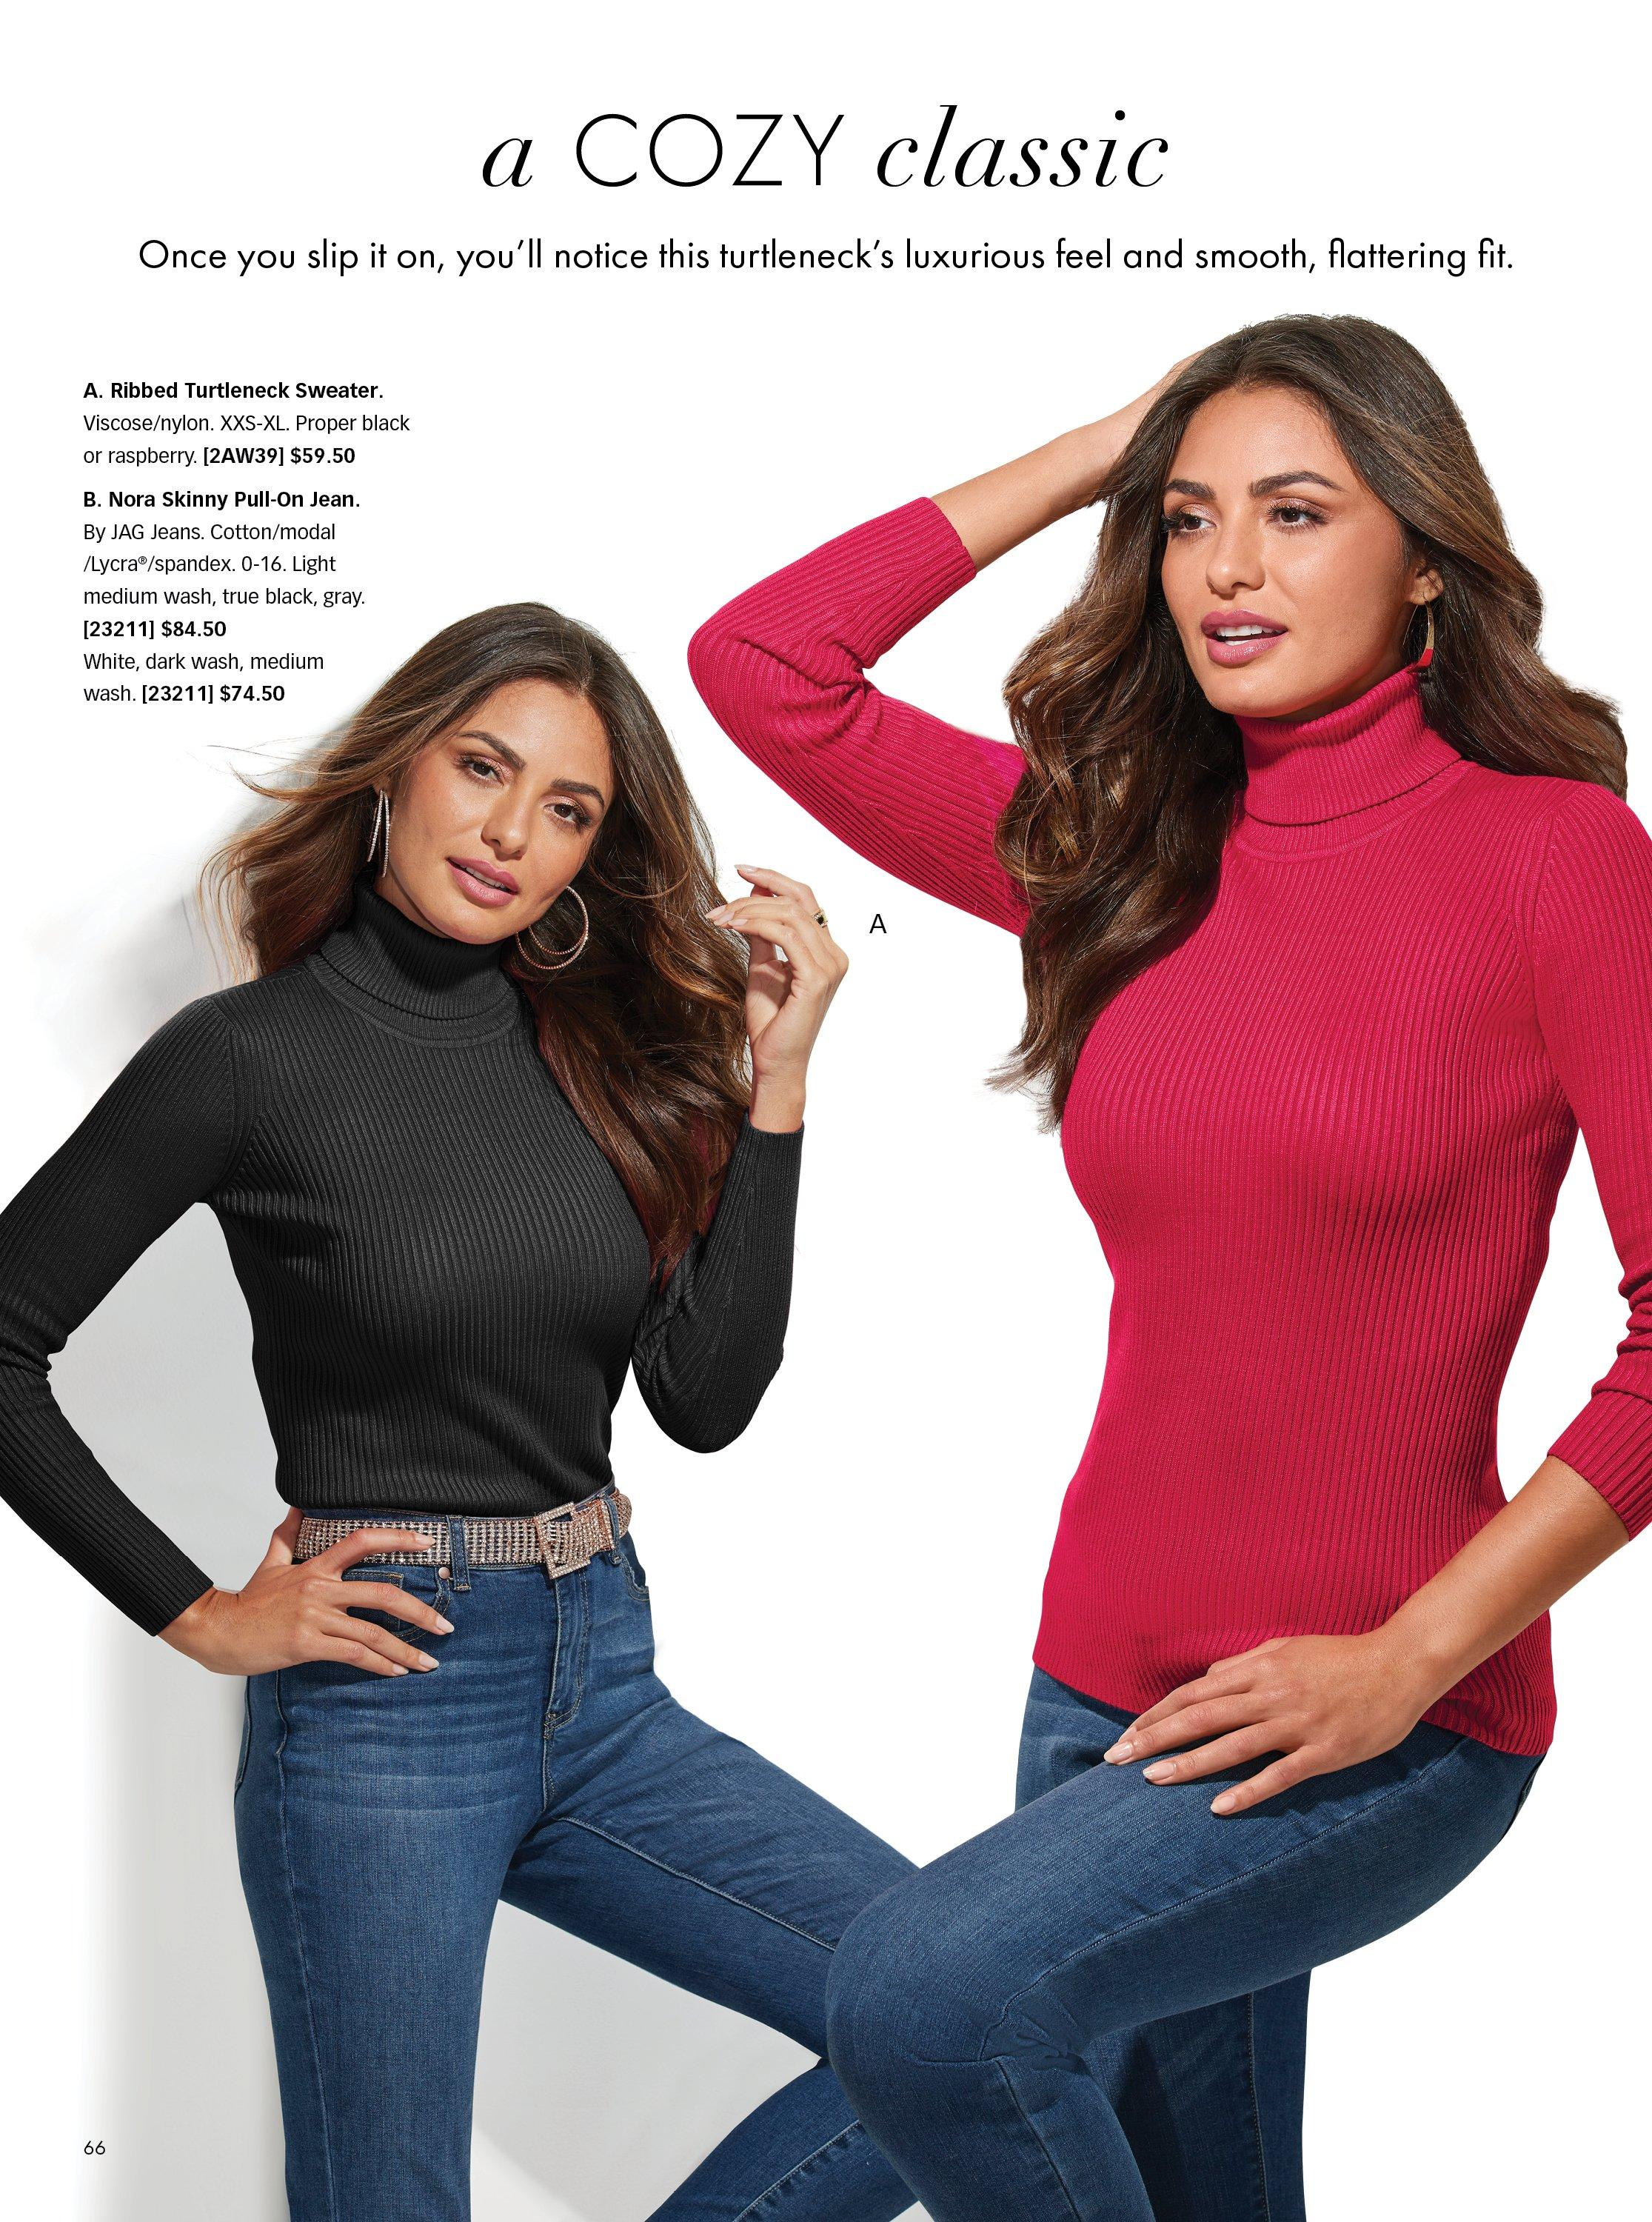 left model wearing a black long sleeve turtleneck sweater, silver belt, and jeans. right model wearing same sweater in red and jeans.